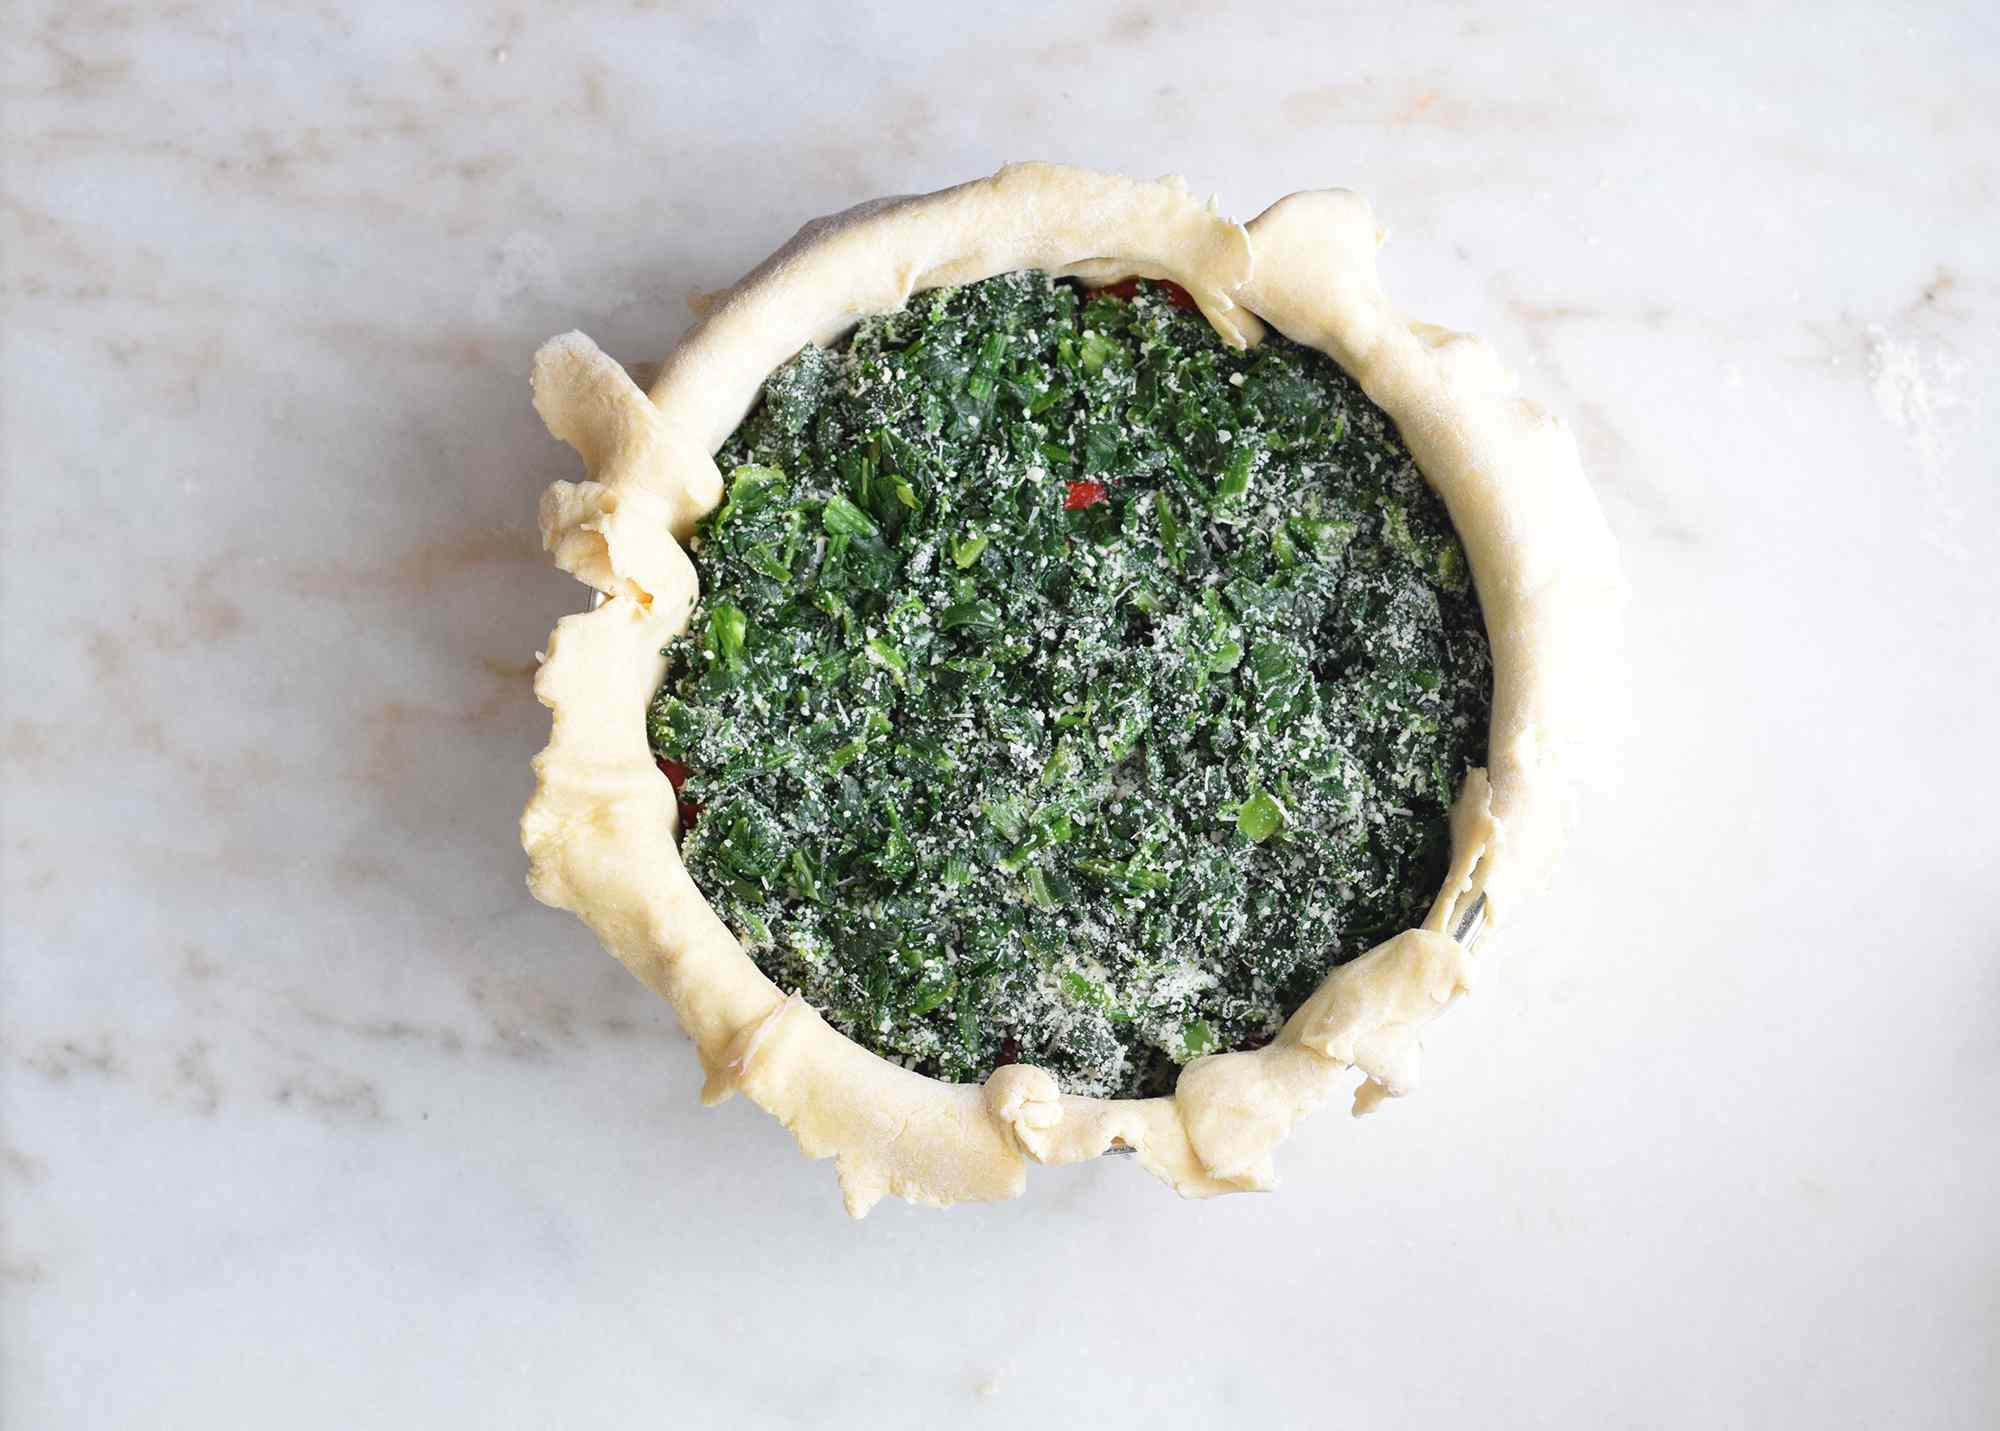 spinach layered into the Easter pie